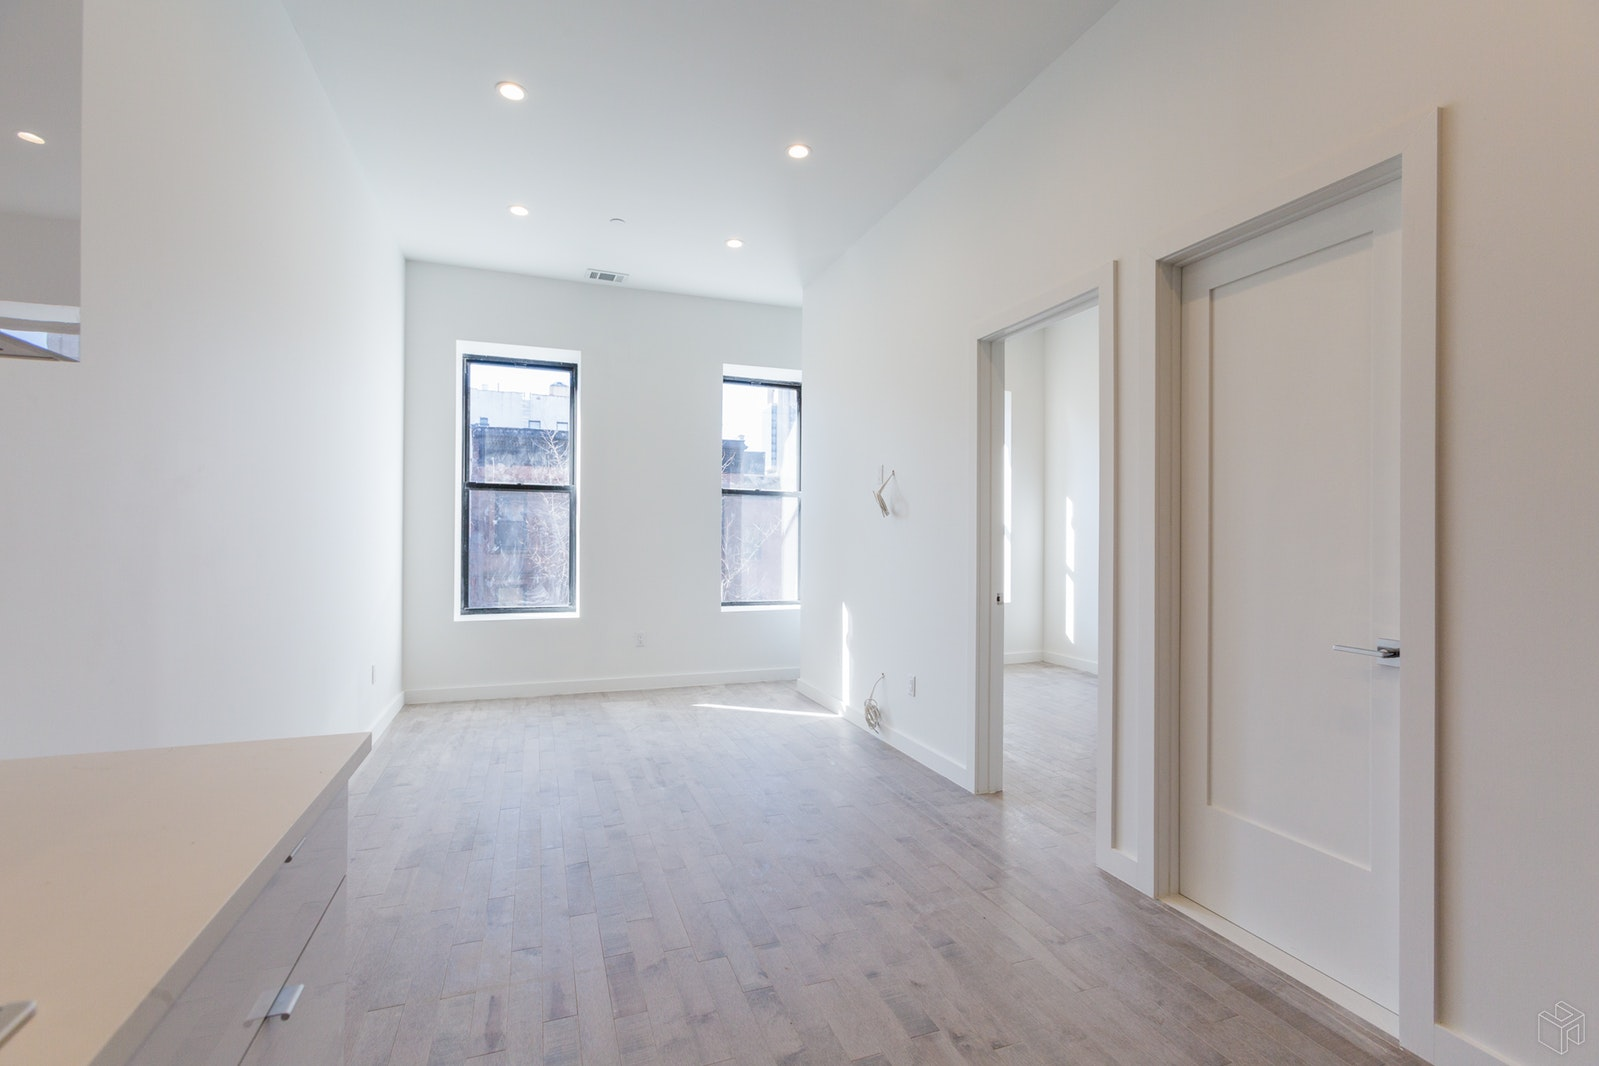 111 West 130th Street 3f, Upper Manhattan, NYC, 10027, $2,575, Rented Property, Halstead Real Estate, Photo 4